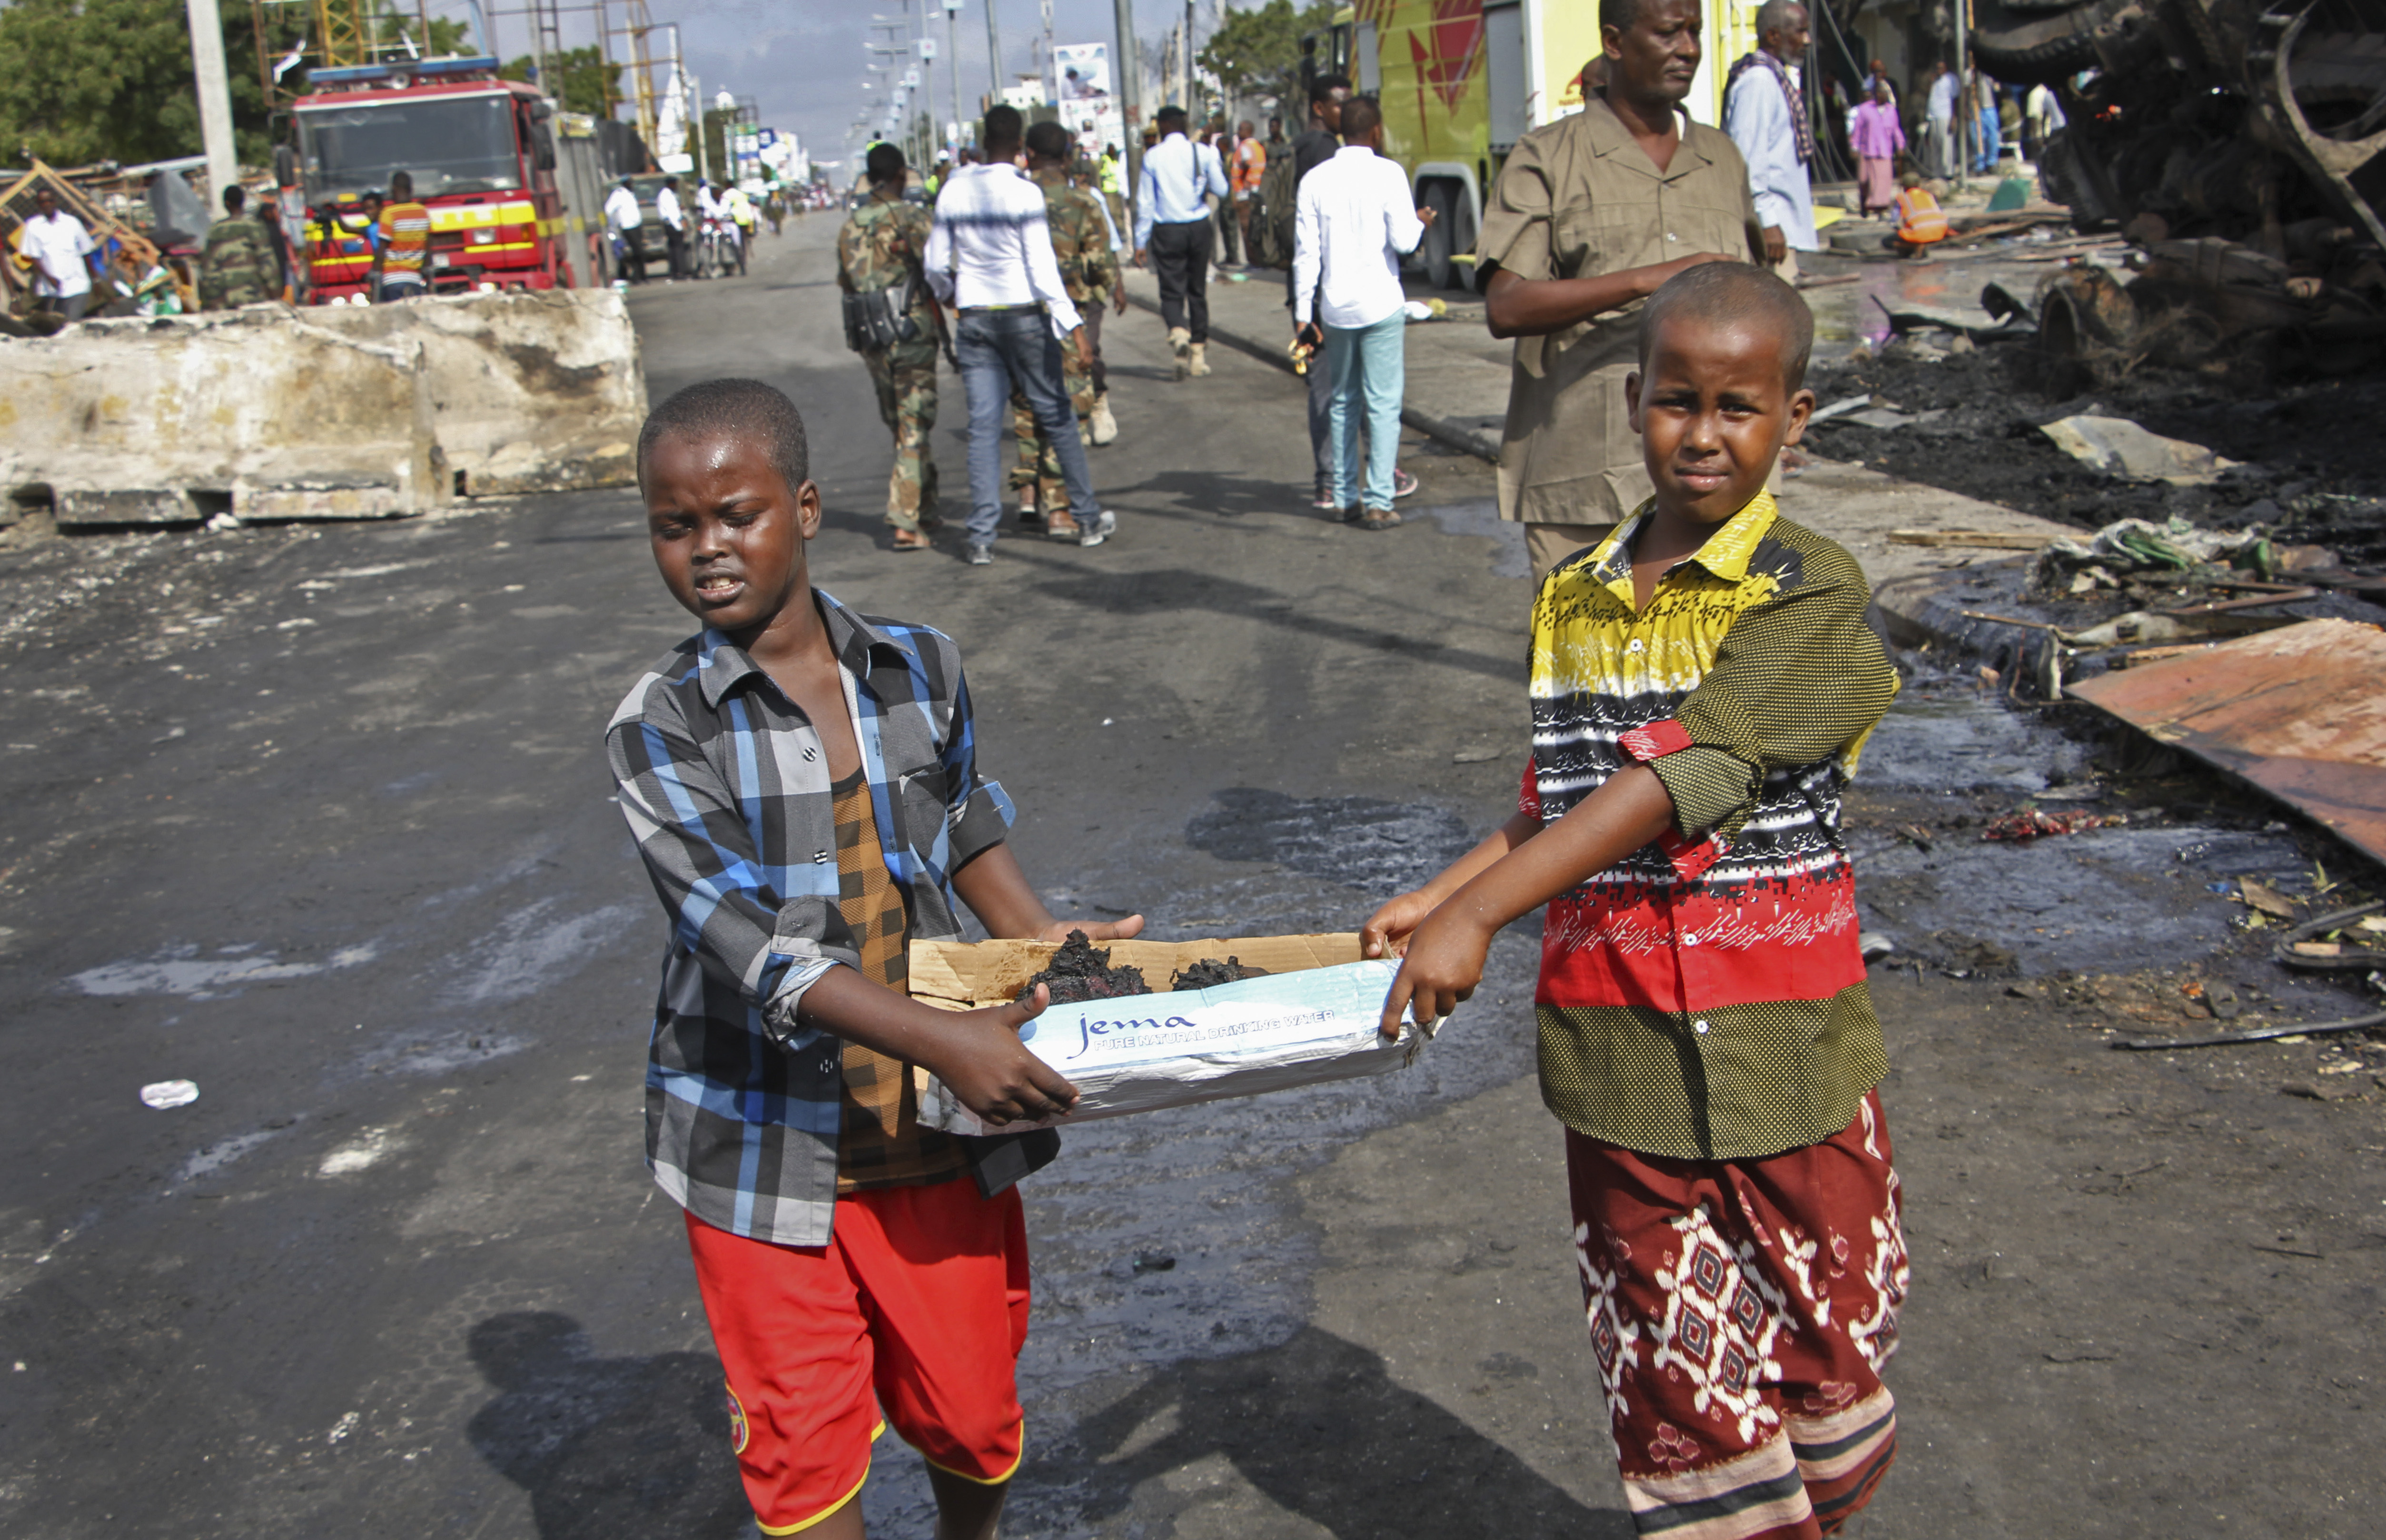 Somali children assist other civilians and security forces in their rescue efforts by carrying away unidentified charred human remains in a cardboard box, to clear the scene of Saturday's blast, in Mogadishu, Somalia, Sunday.